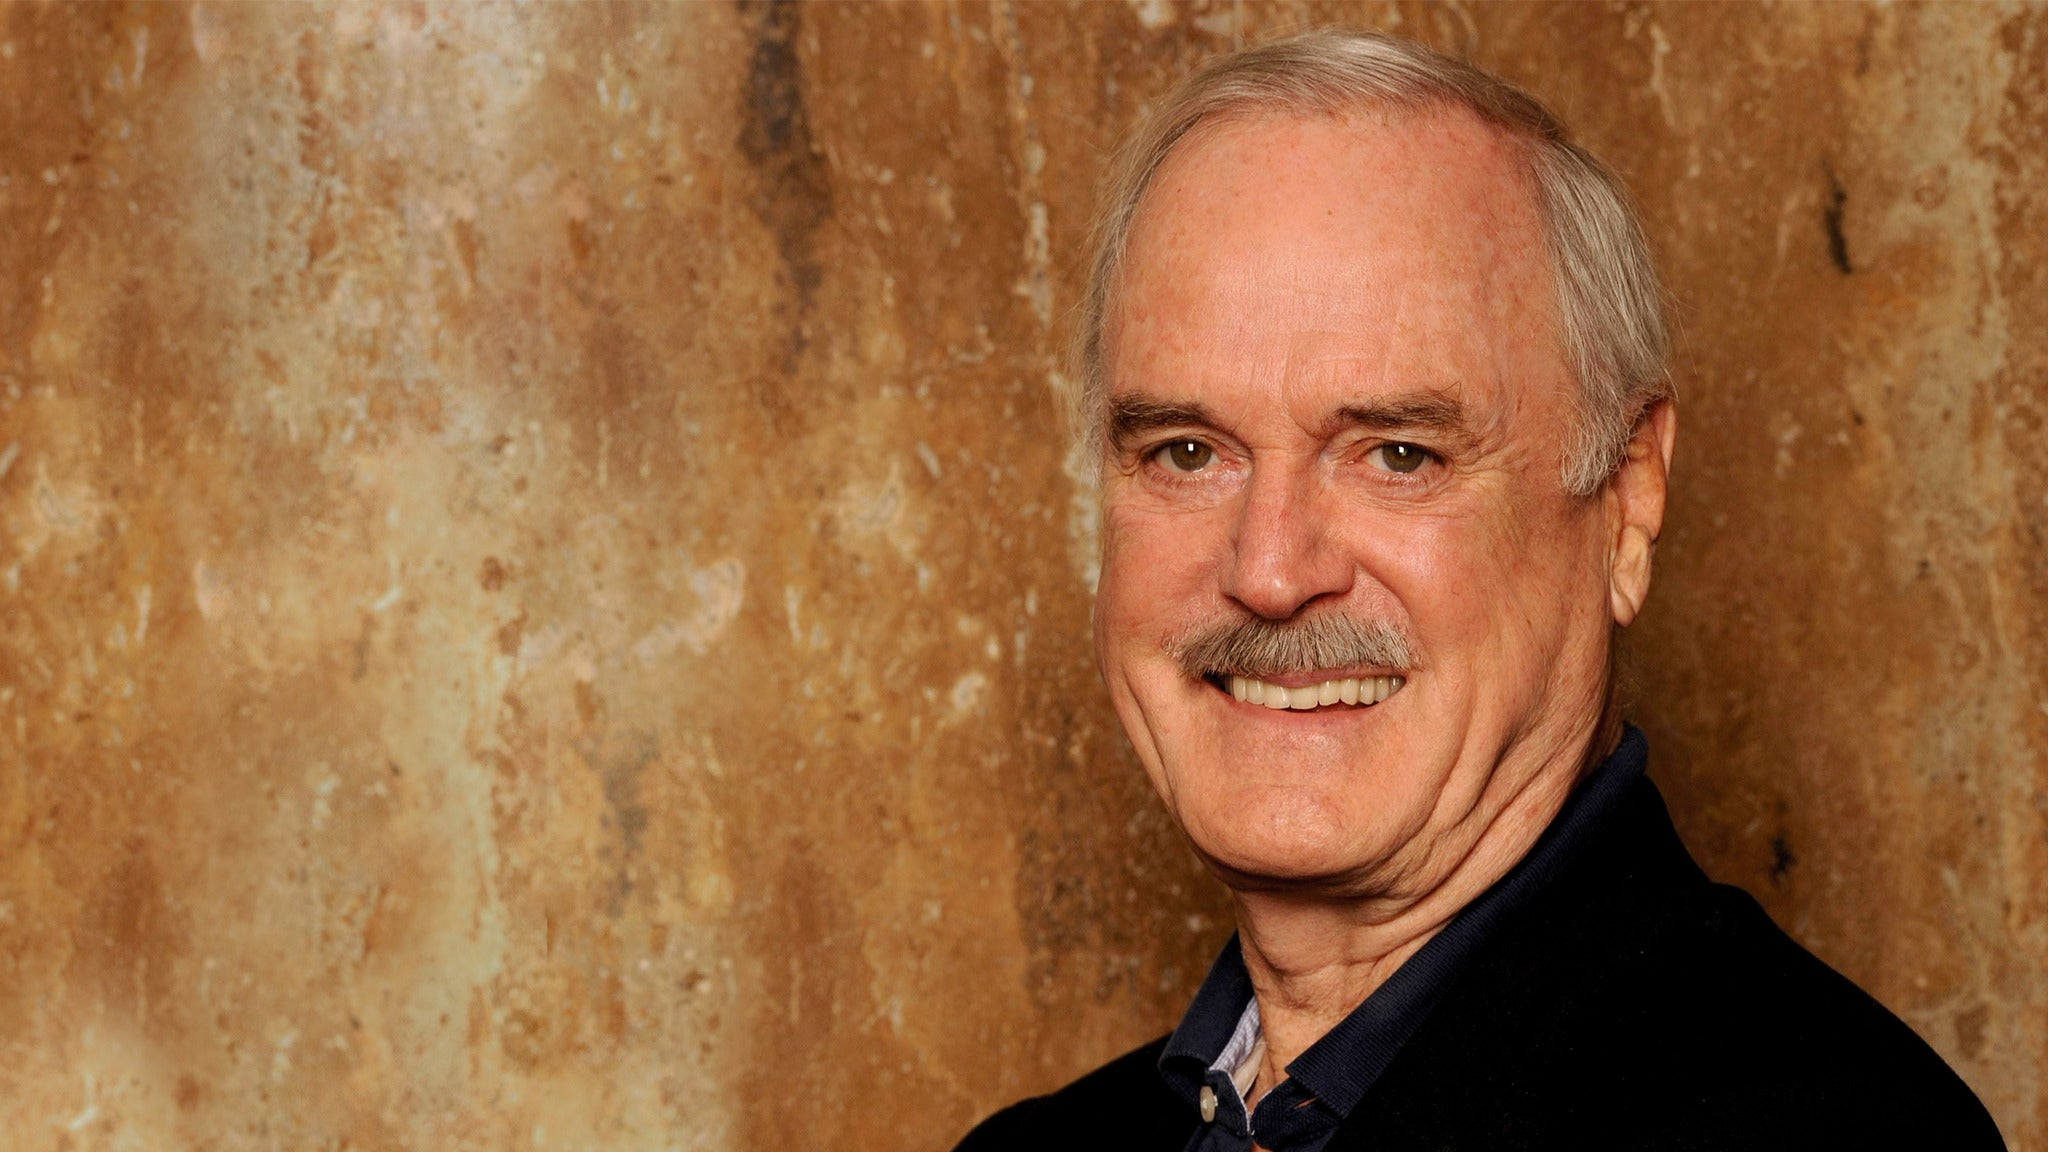 John Cleese at F.M. Kirby Center